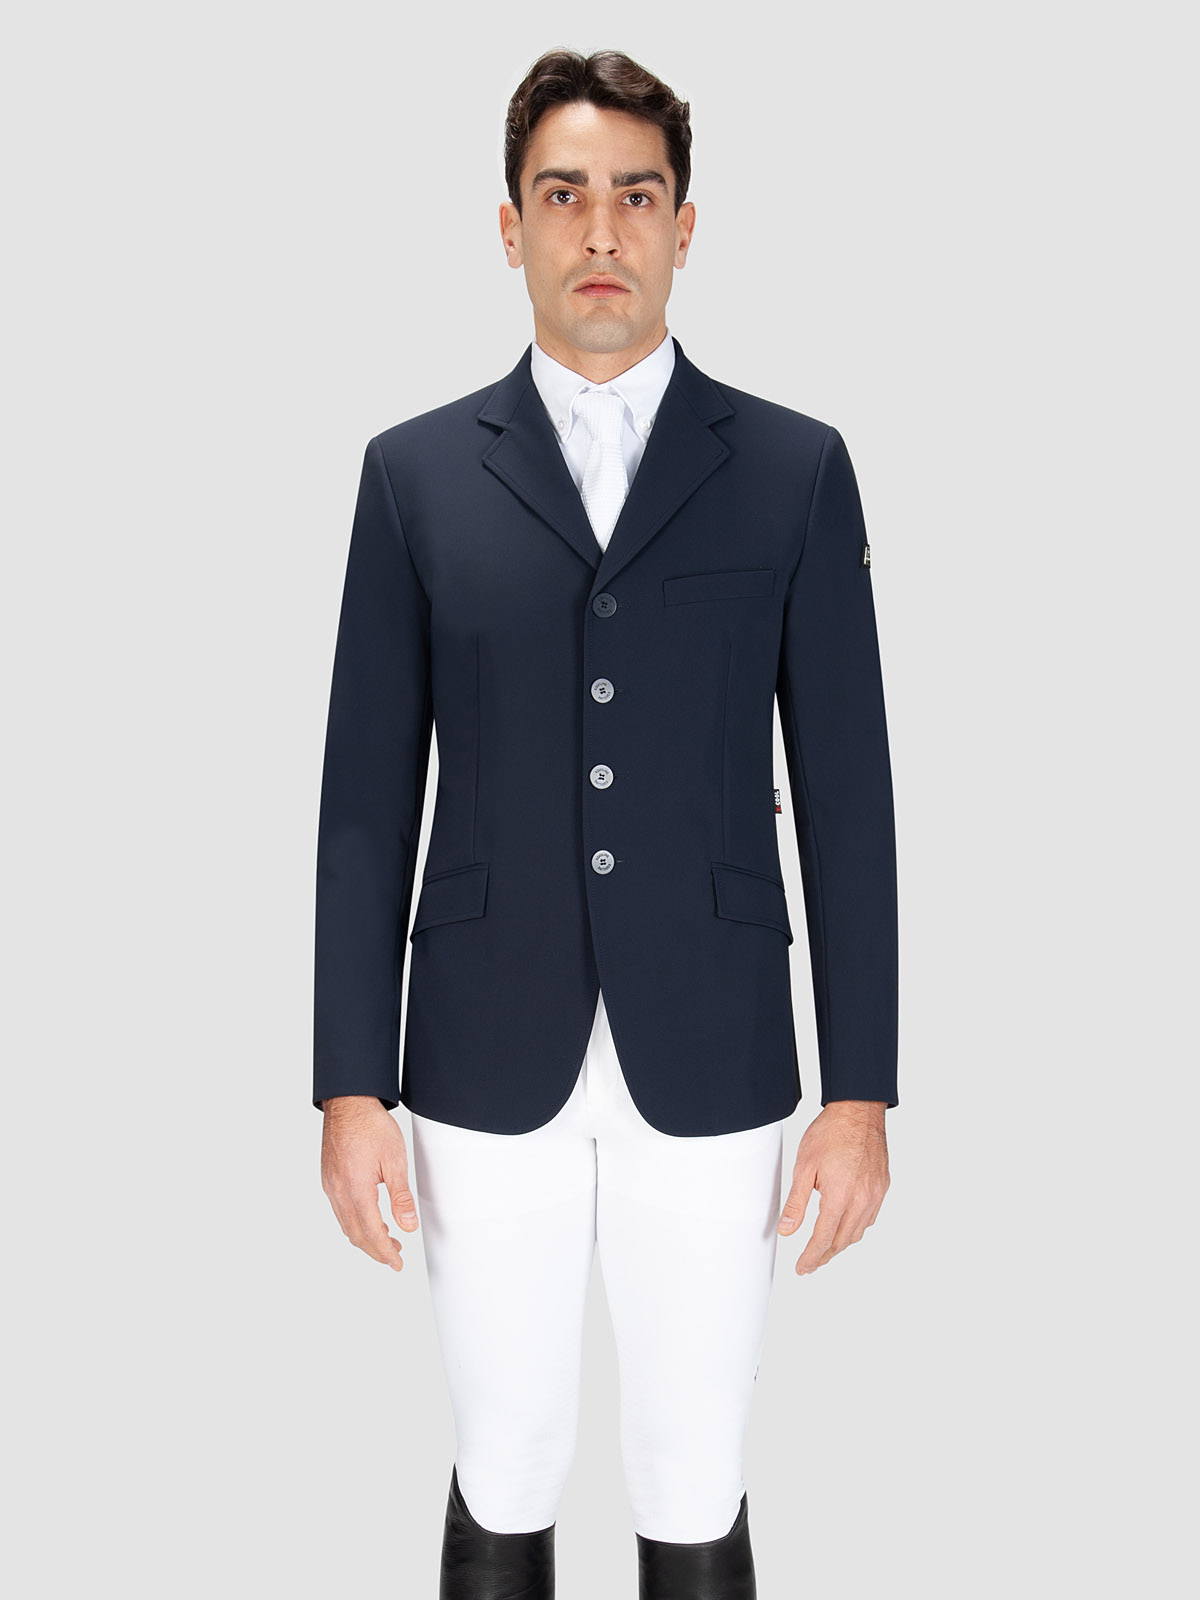 HANK - Men's Hunter Show Coat 3